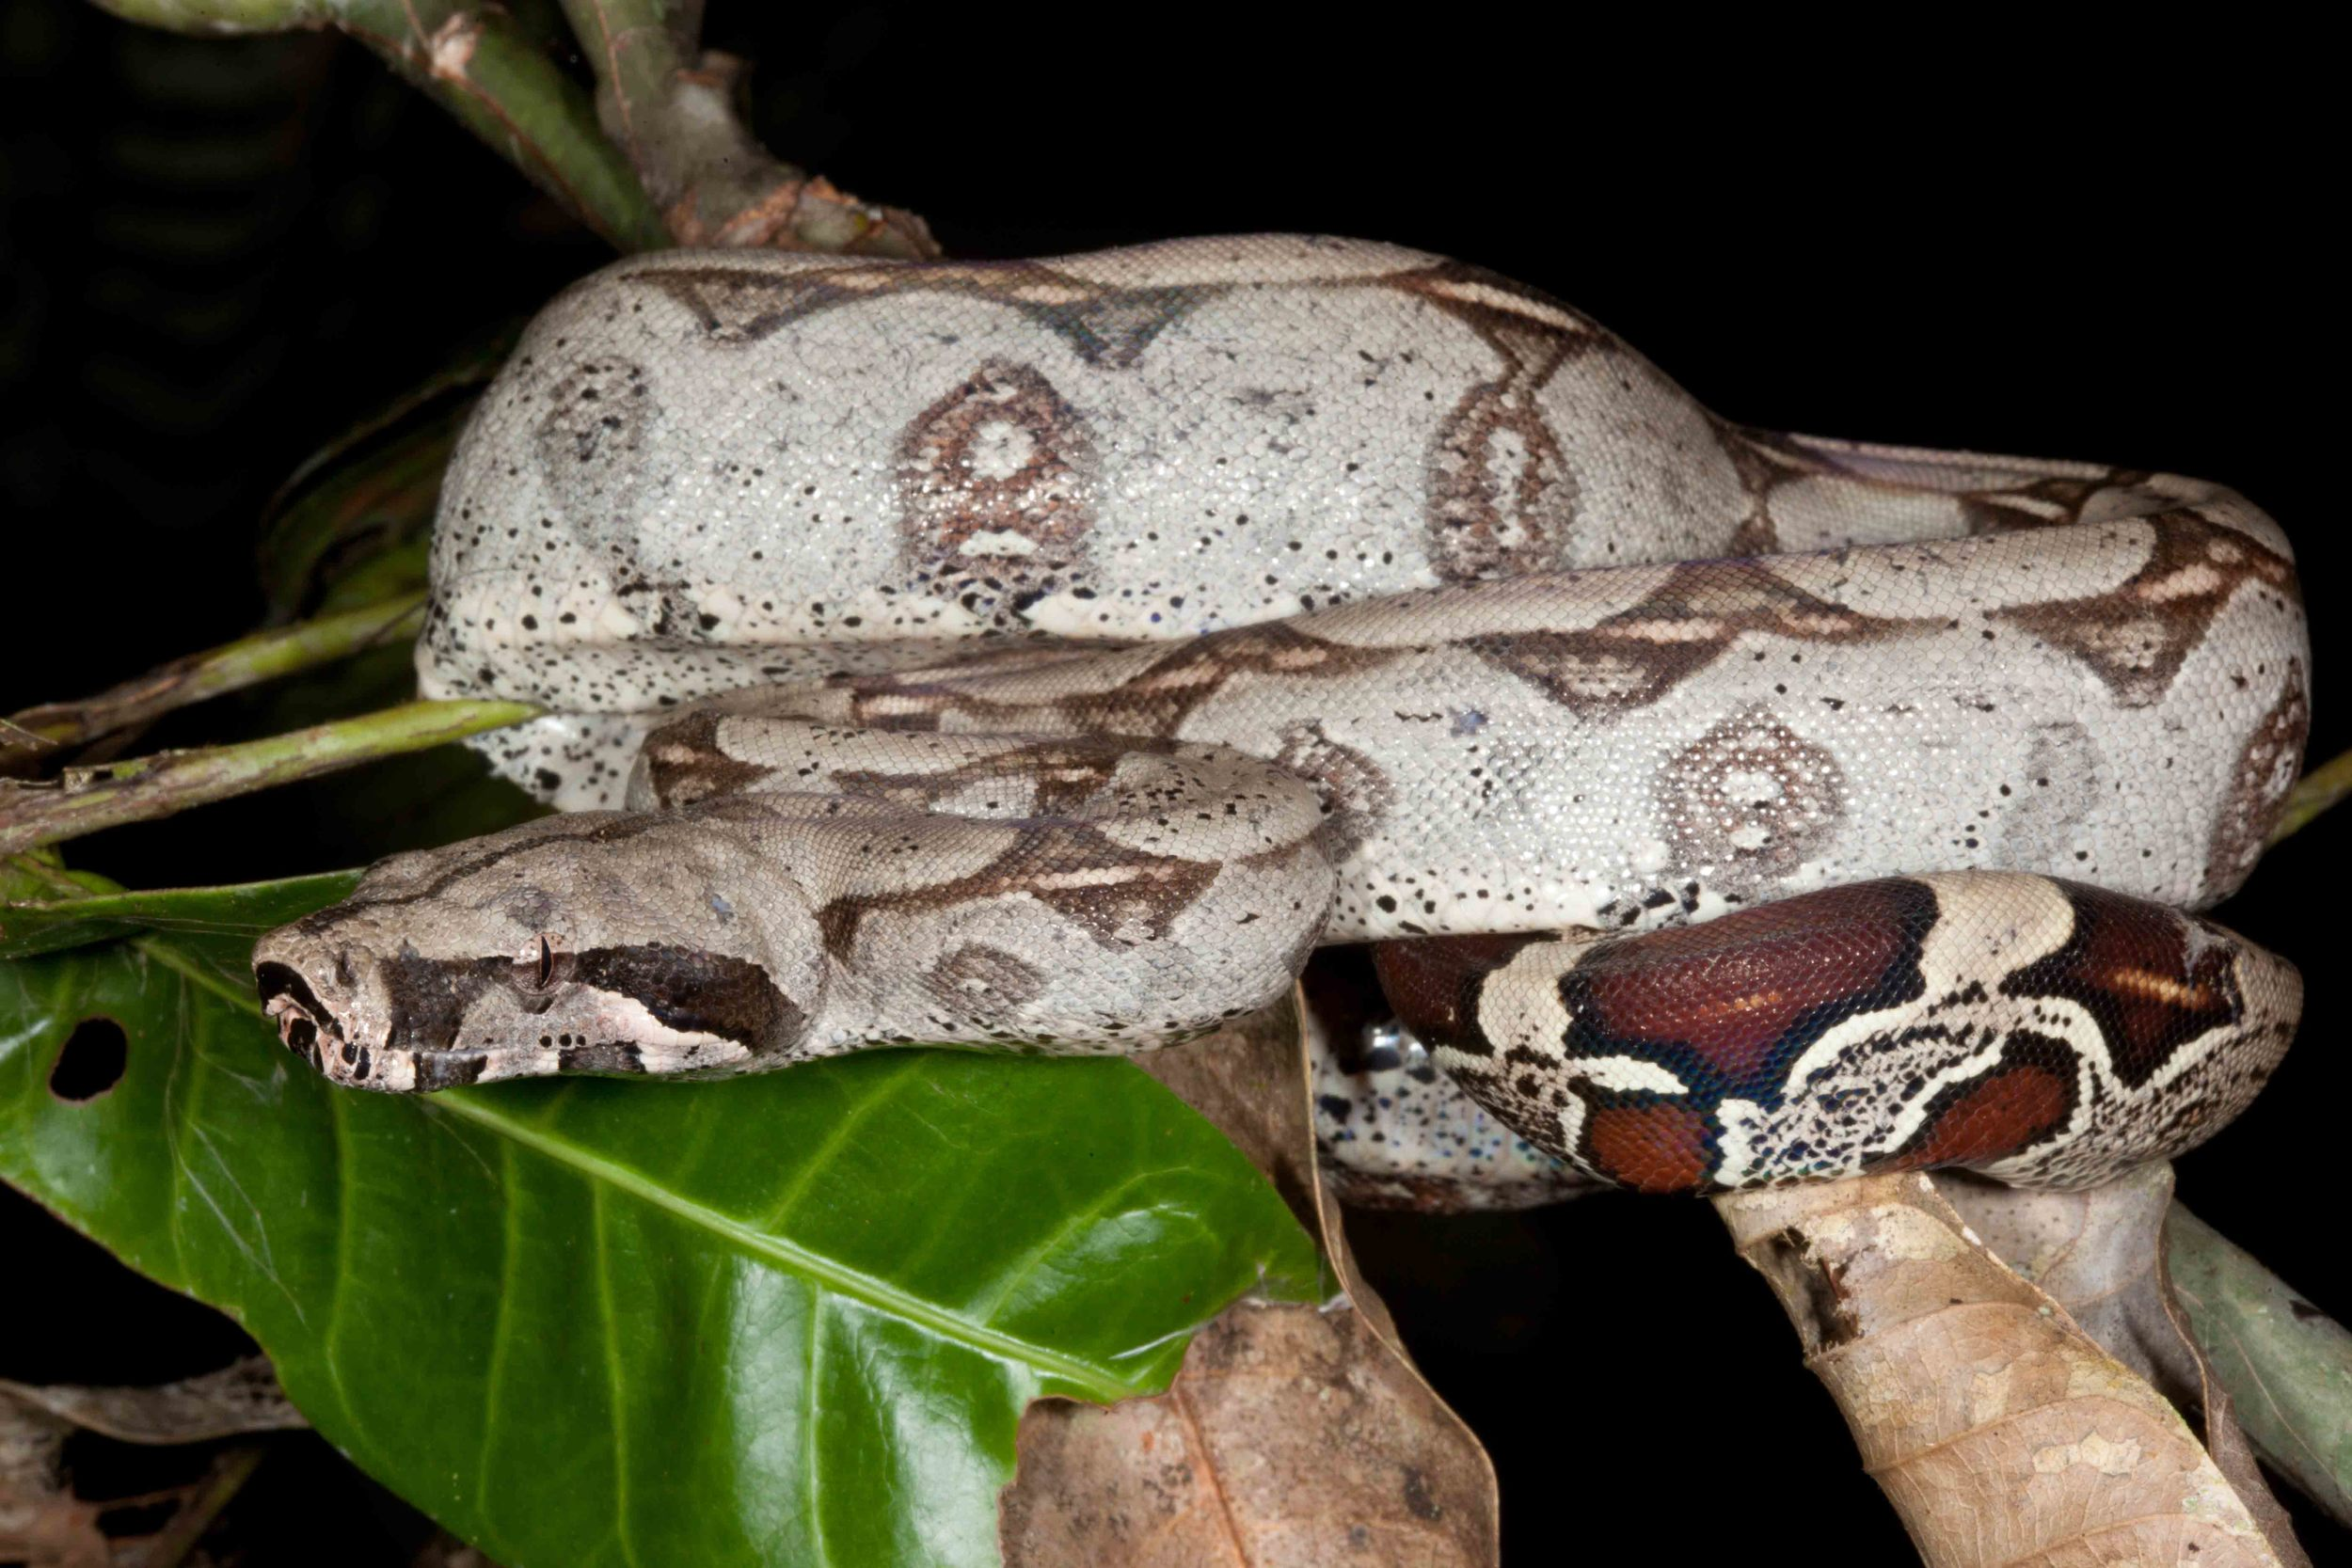 Boa constrictor constrictor, Red Tailed Boa (Photo by Matt Cage)